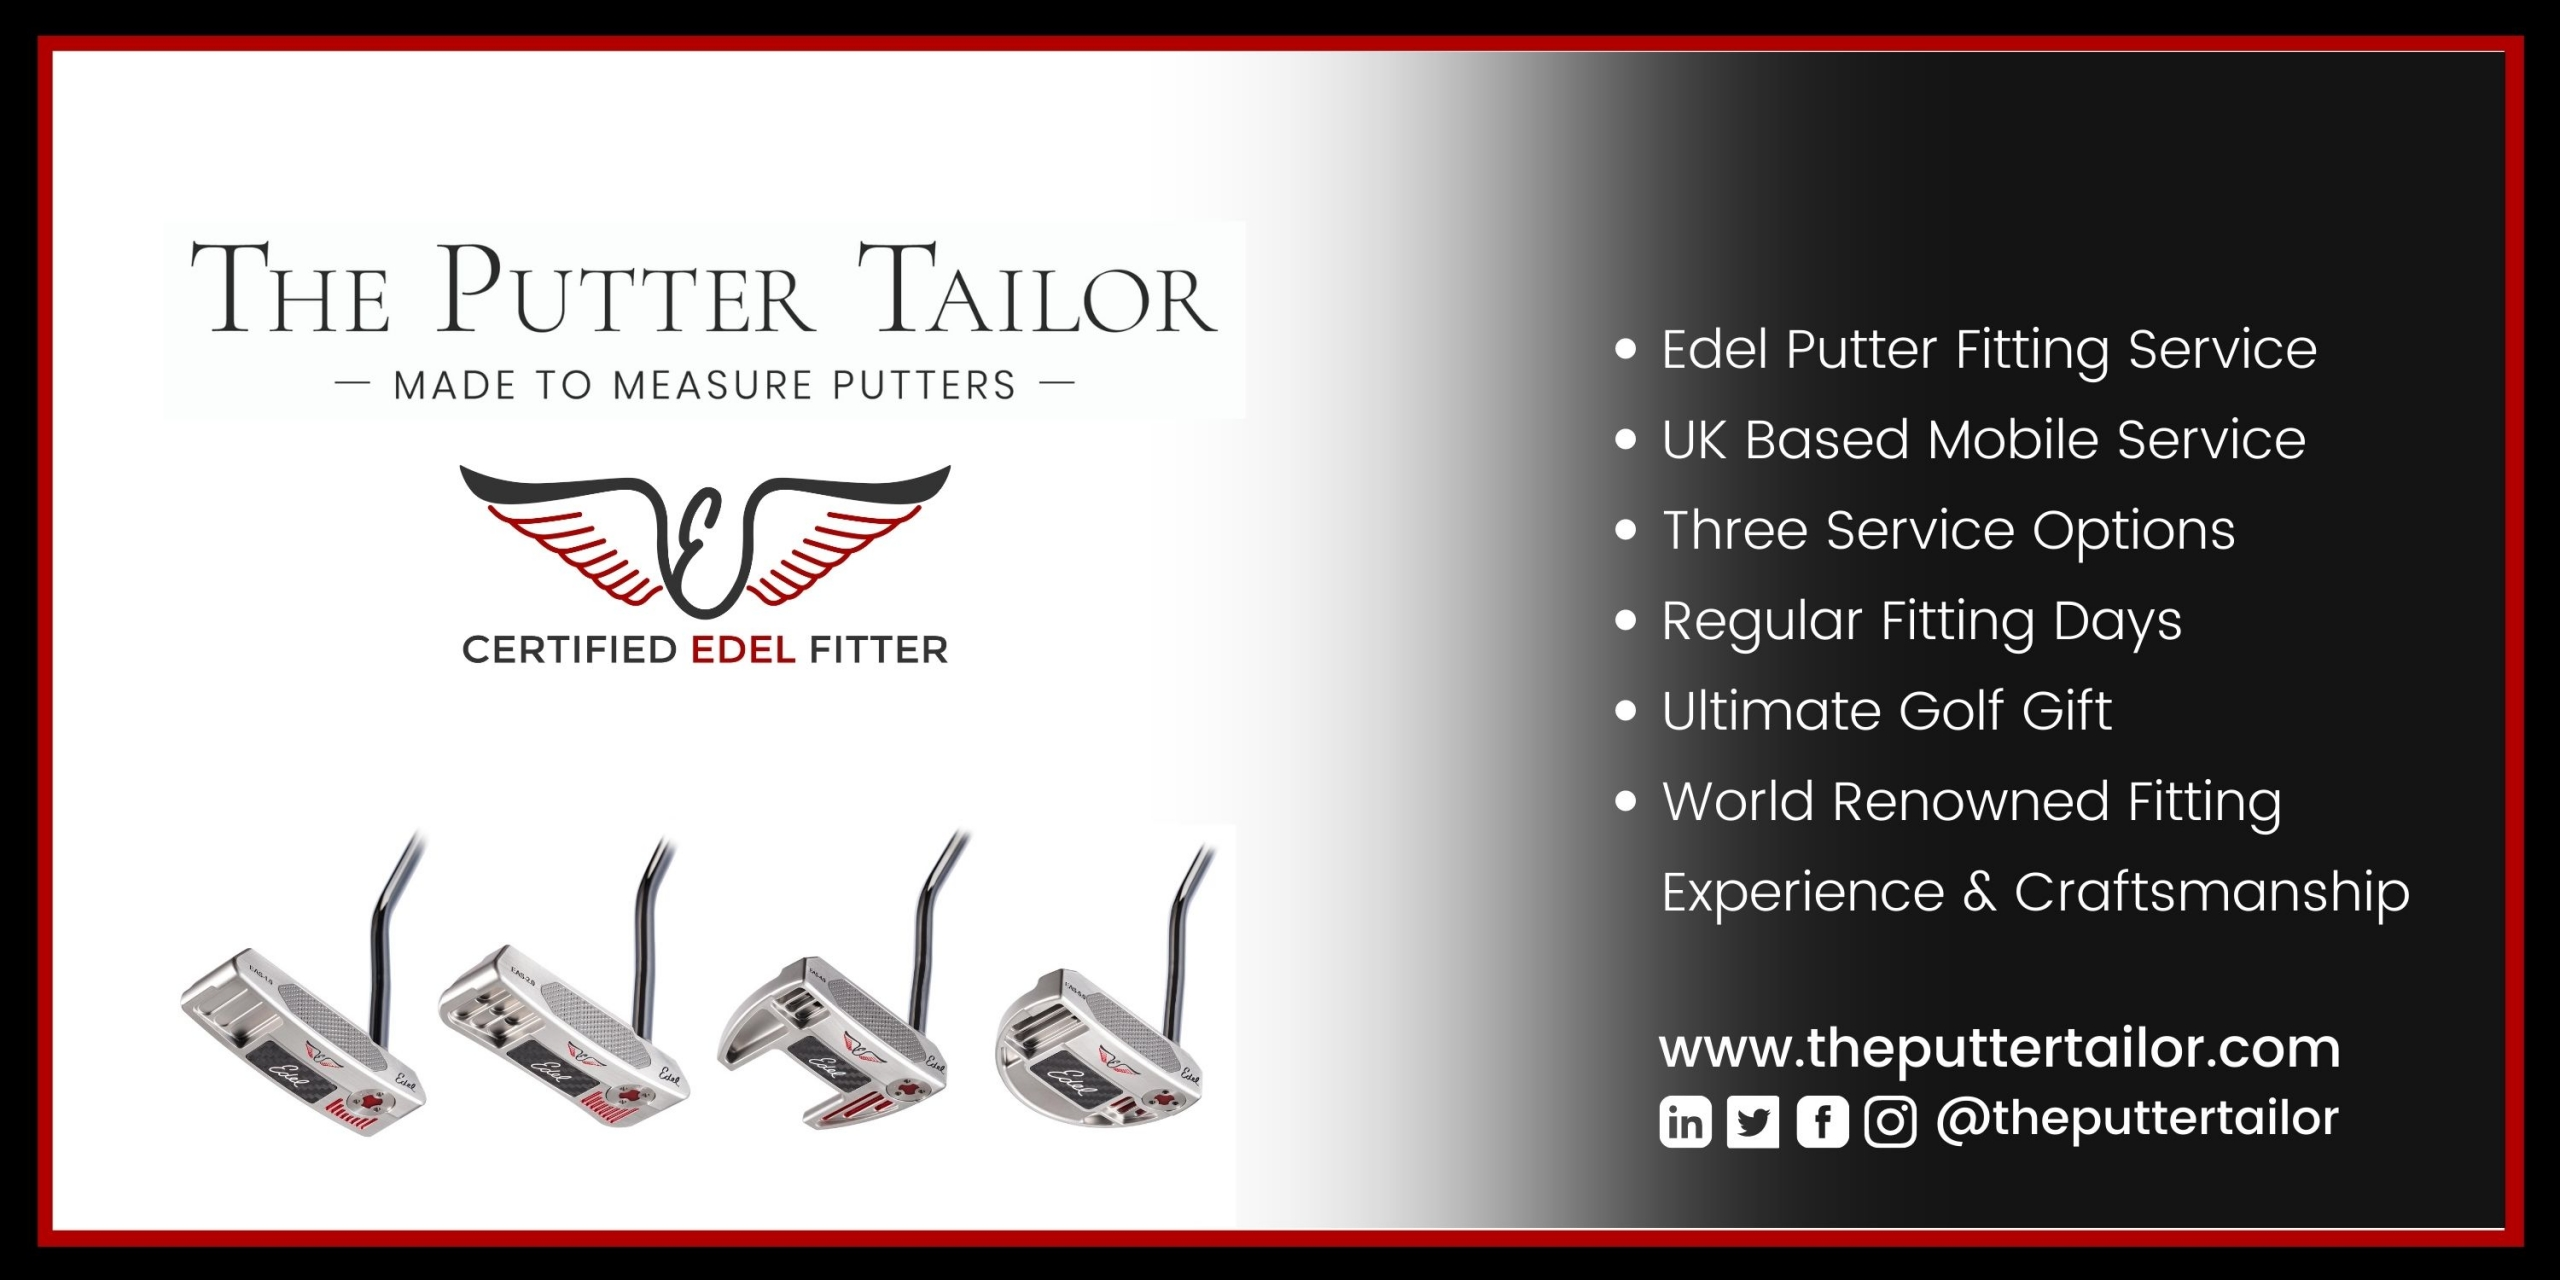 The Putter Tailor fits Edel Golf EAS Custom Putters